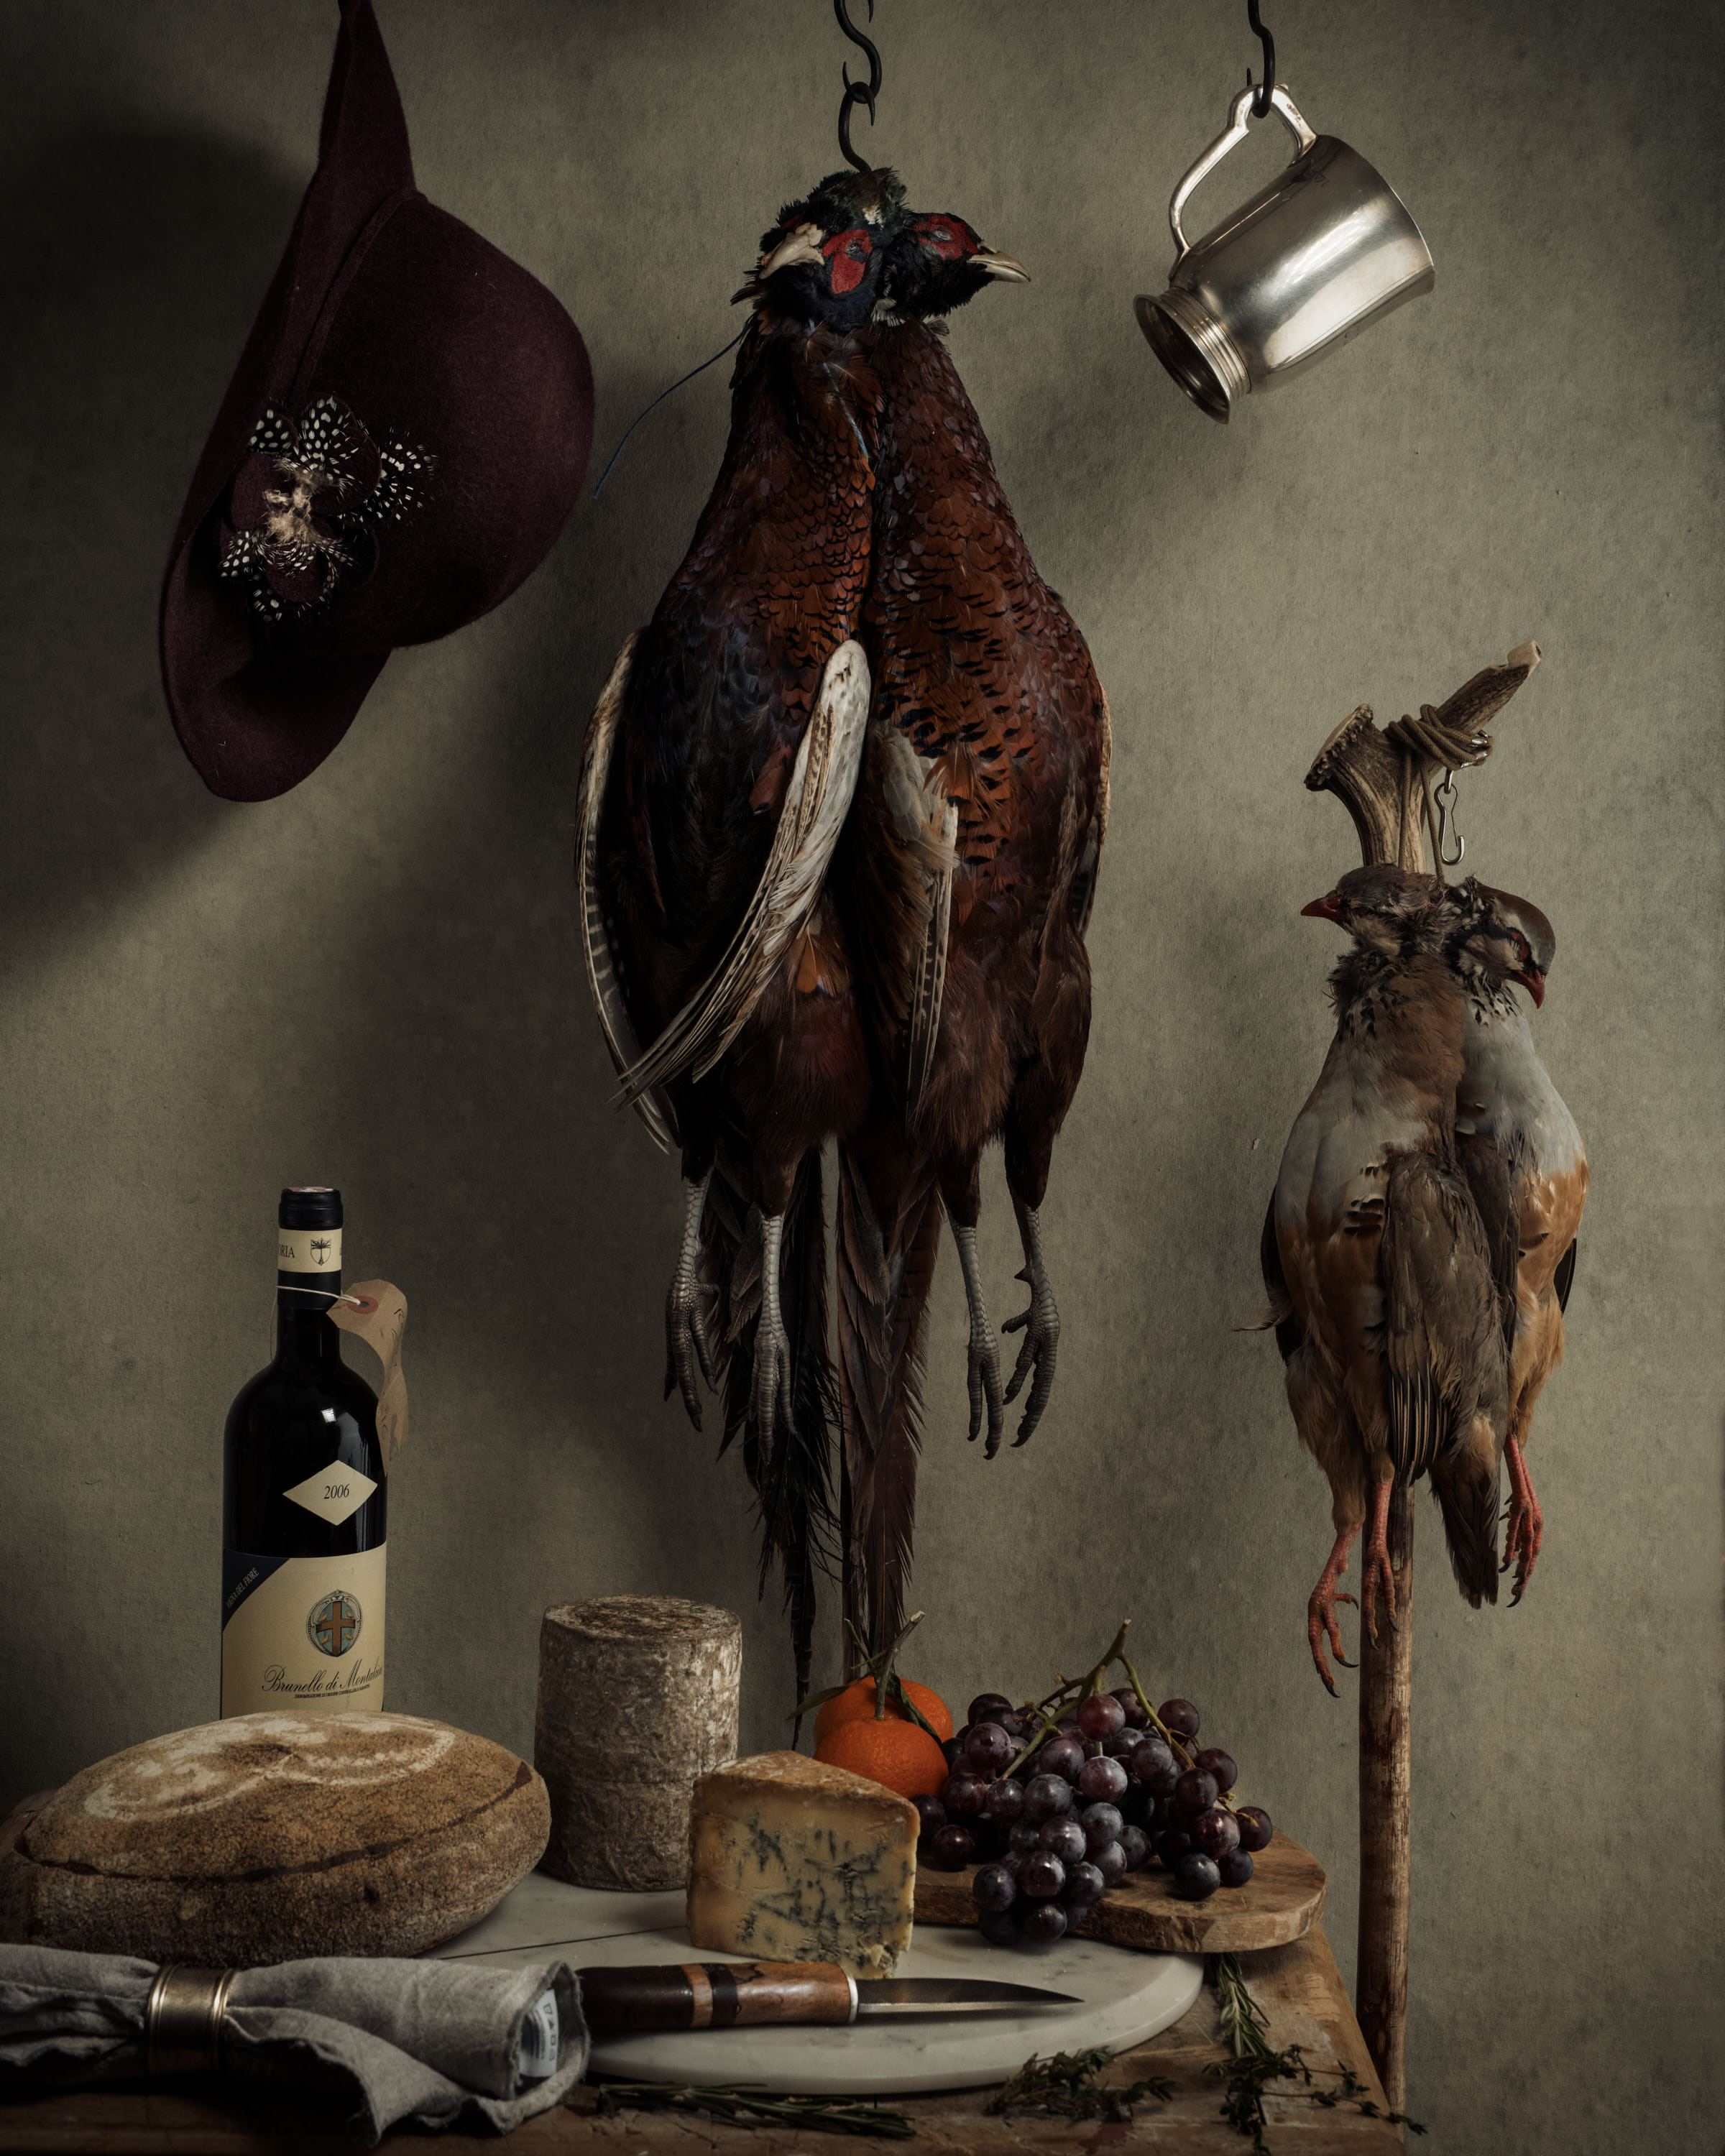 Fresh game photographed by Matthew Lloyd in the style of the Dutch Masters